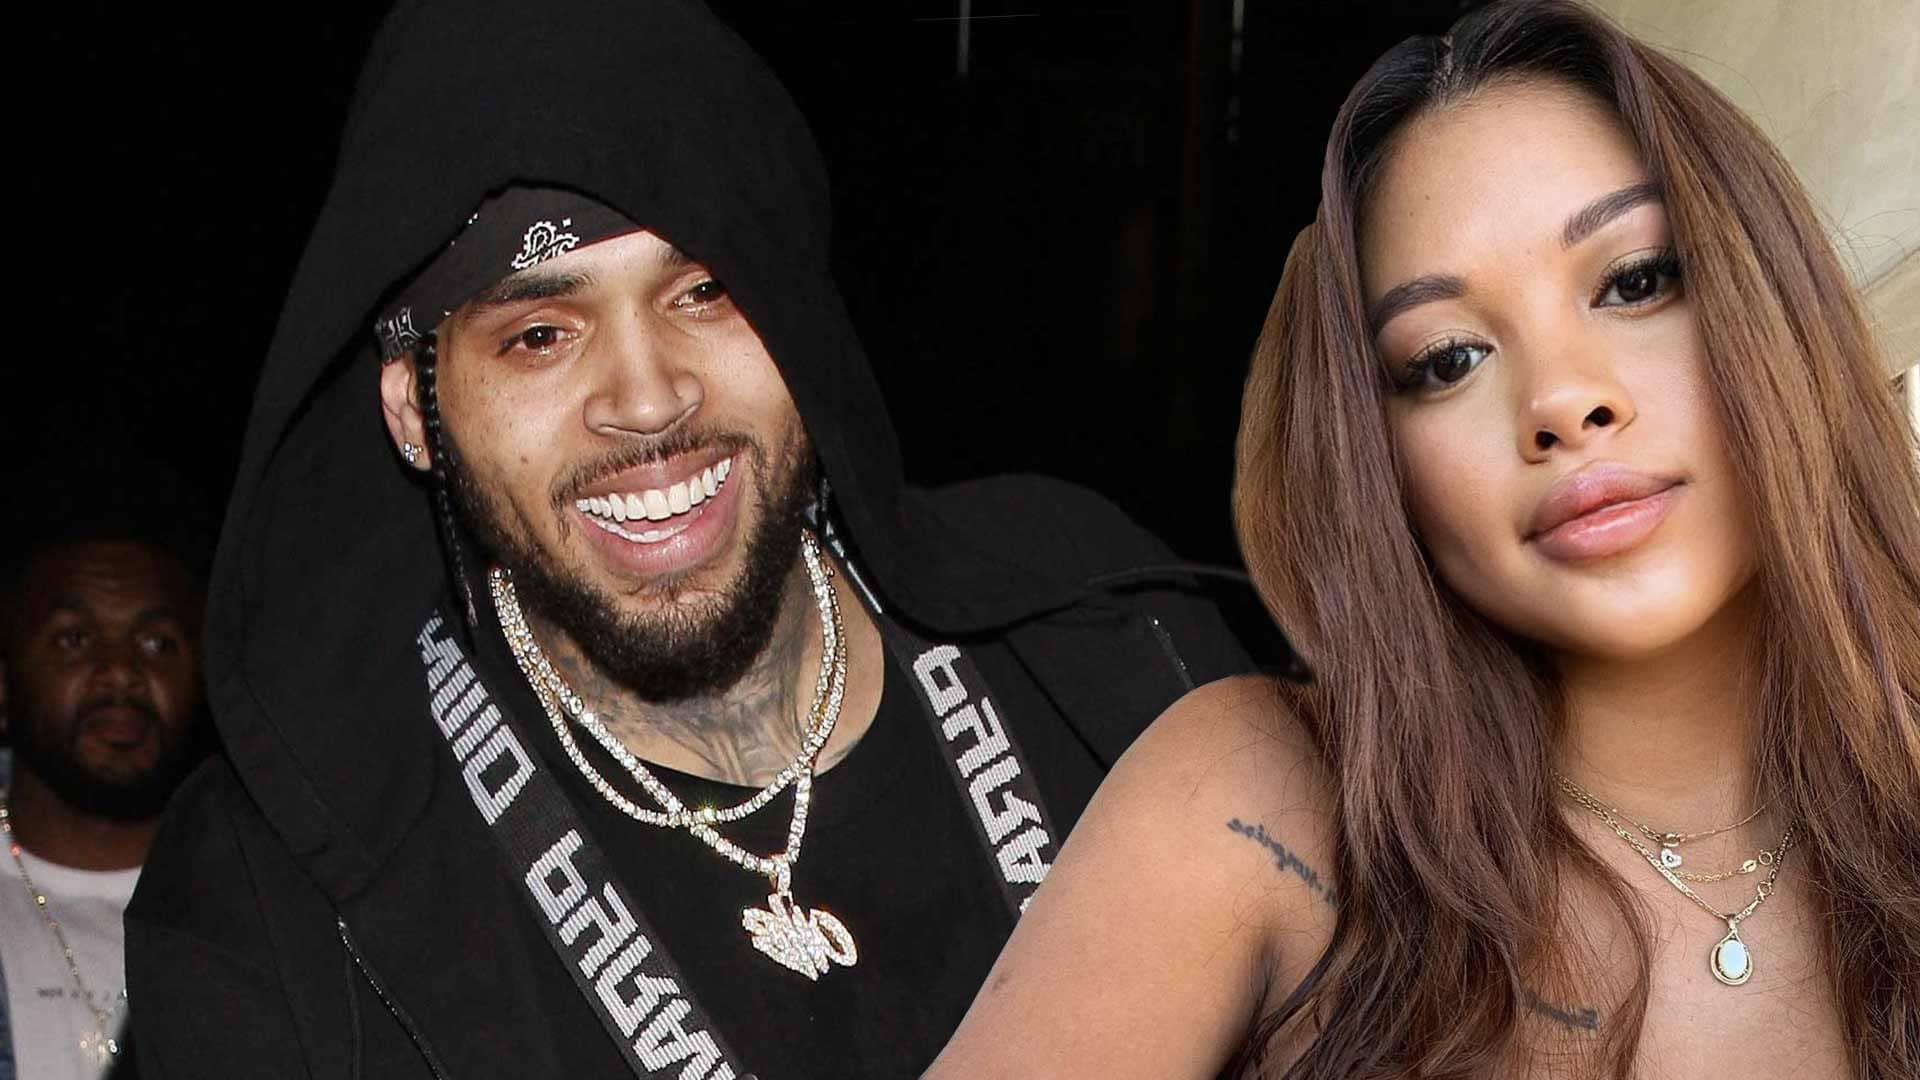 Chris Brown's Baby Mama, Ammika Harris Impresses Fans With The Latest Photo Session